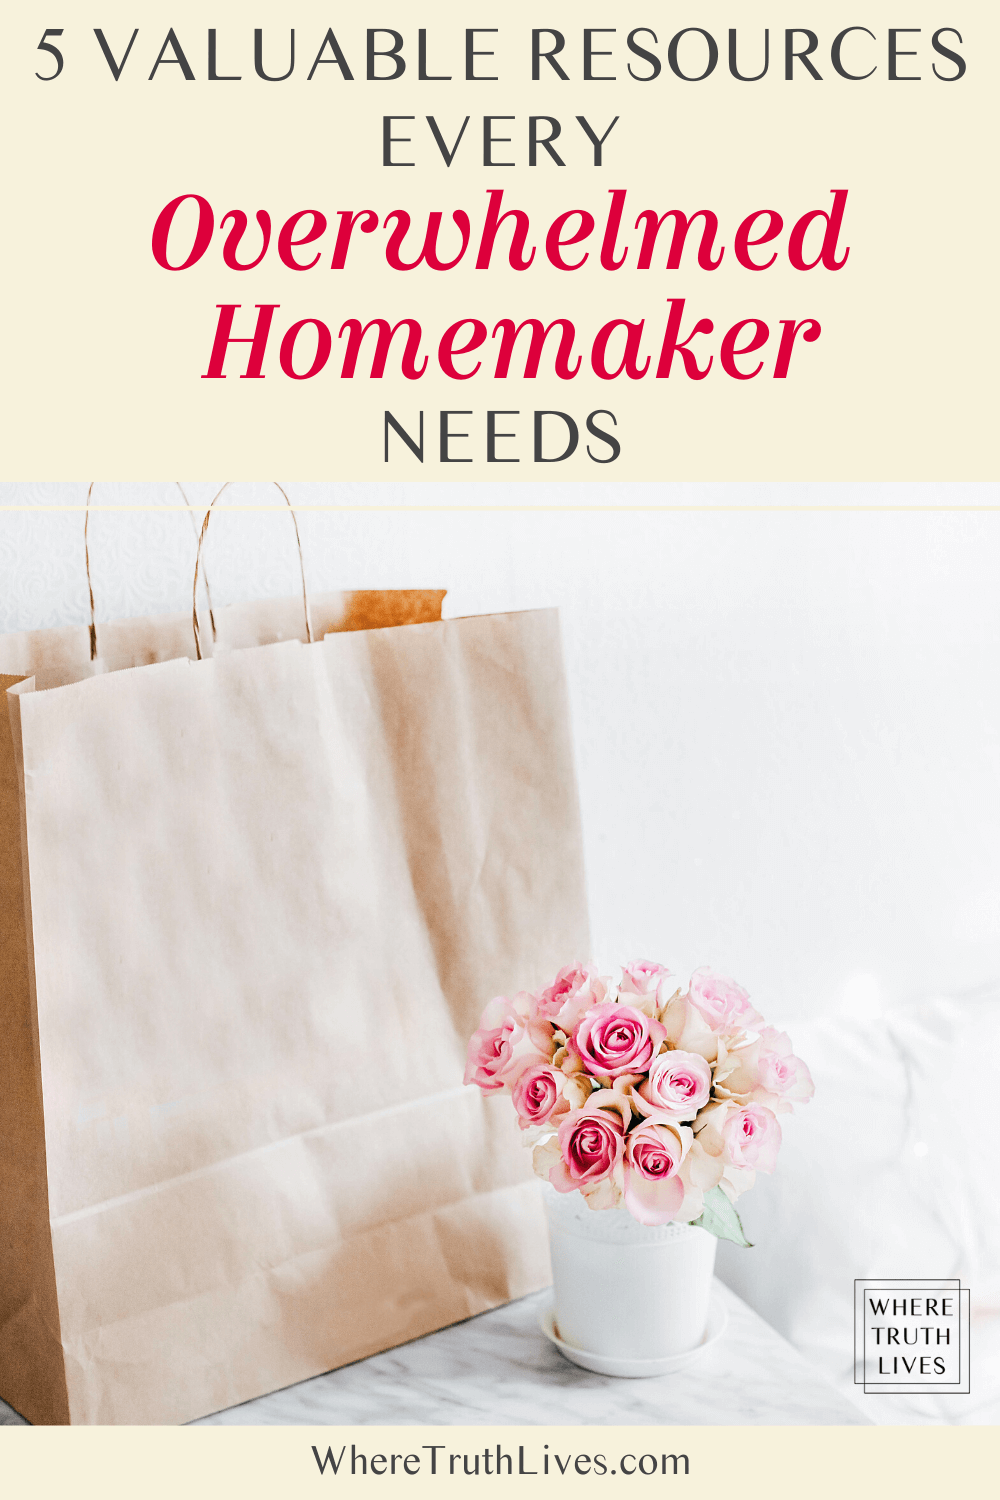 5 Valuable Resources Every Overwhelmed Homemaker Needs